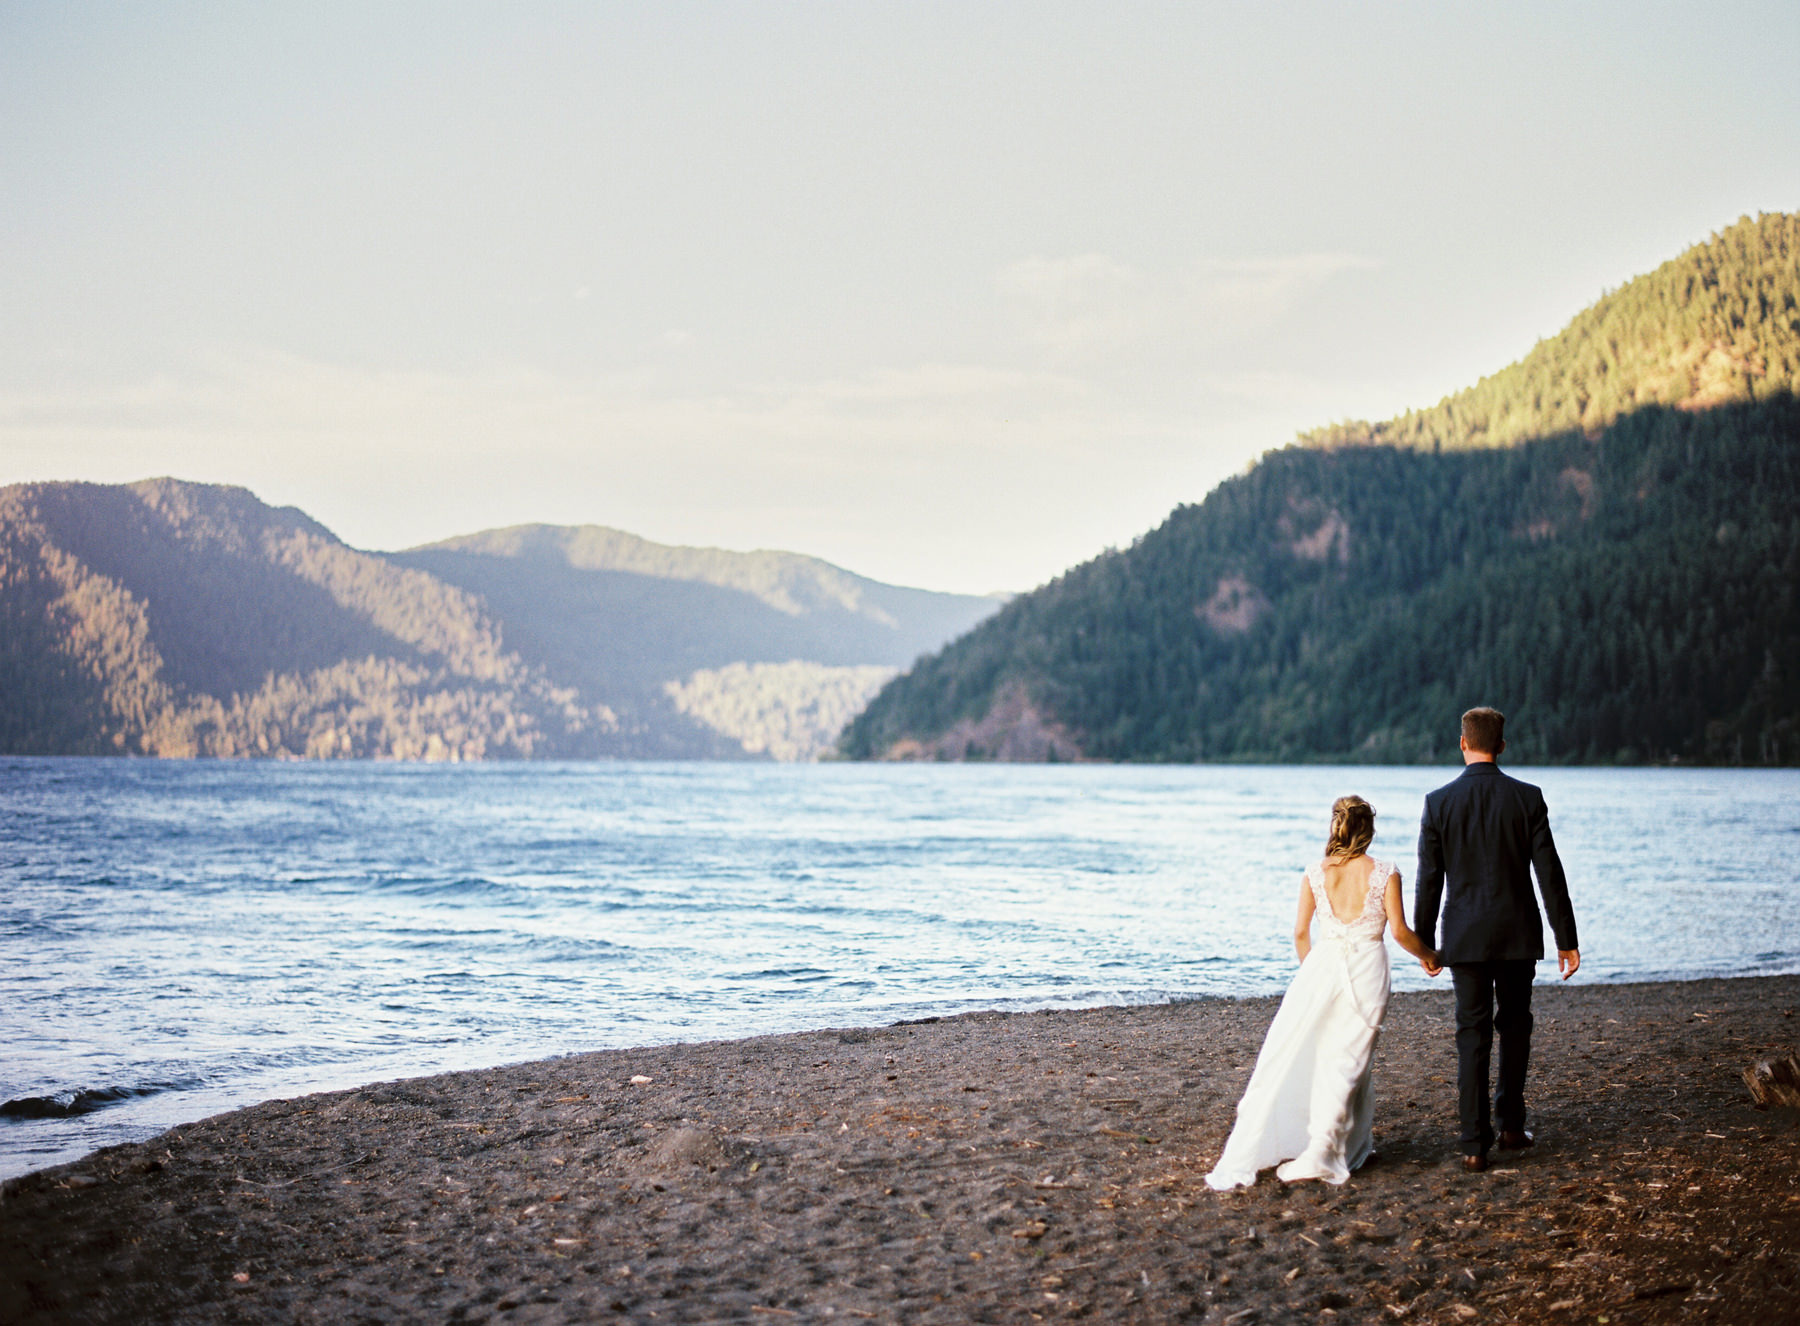 178-fine-art-film-wedding-portraits-at-nature-bride-near-the-lake-crescent-lodge.jpg